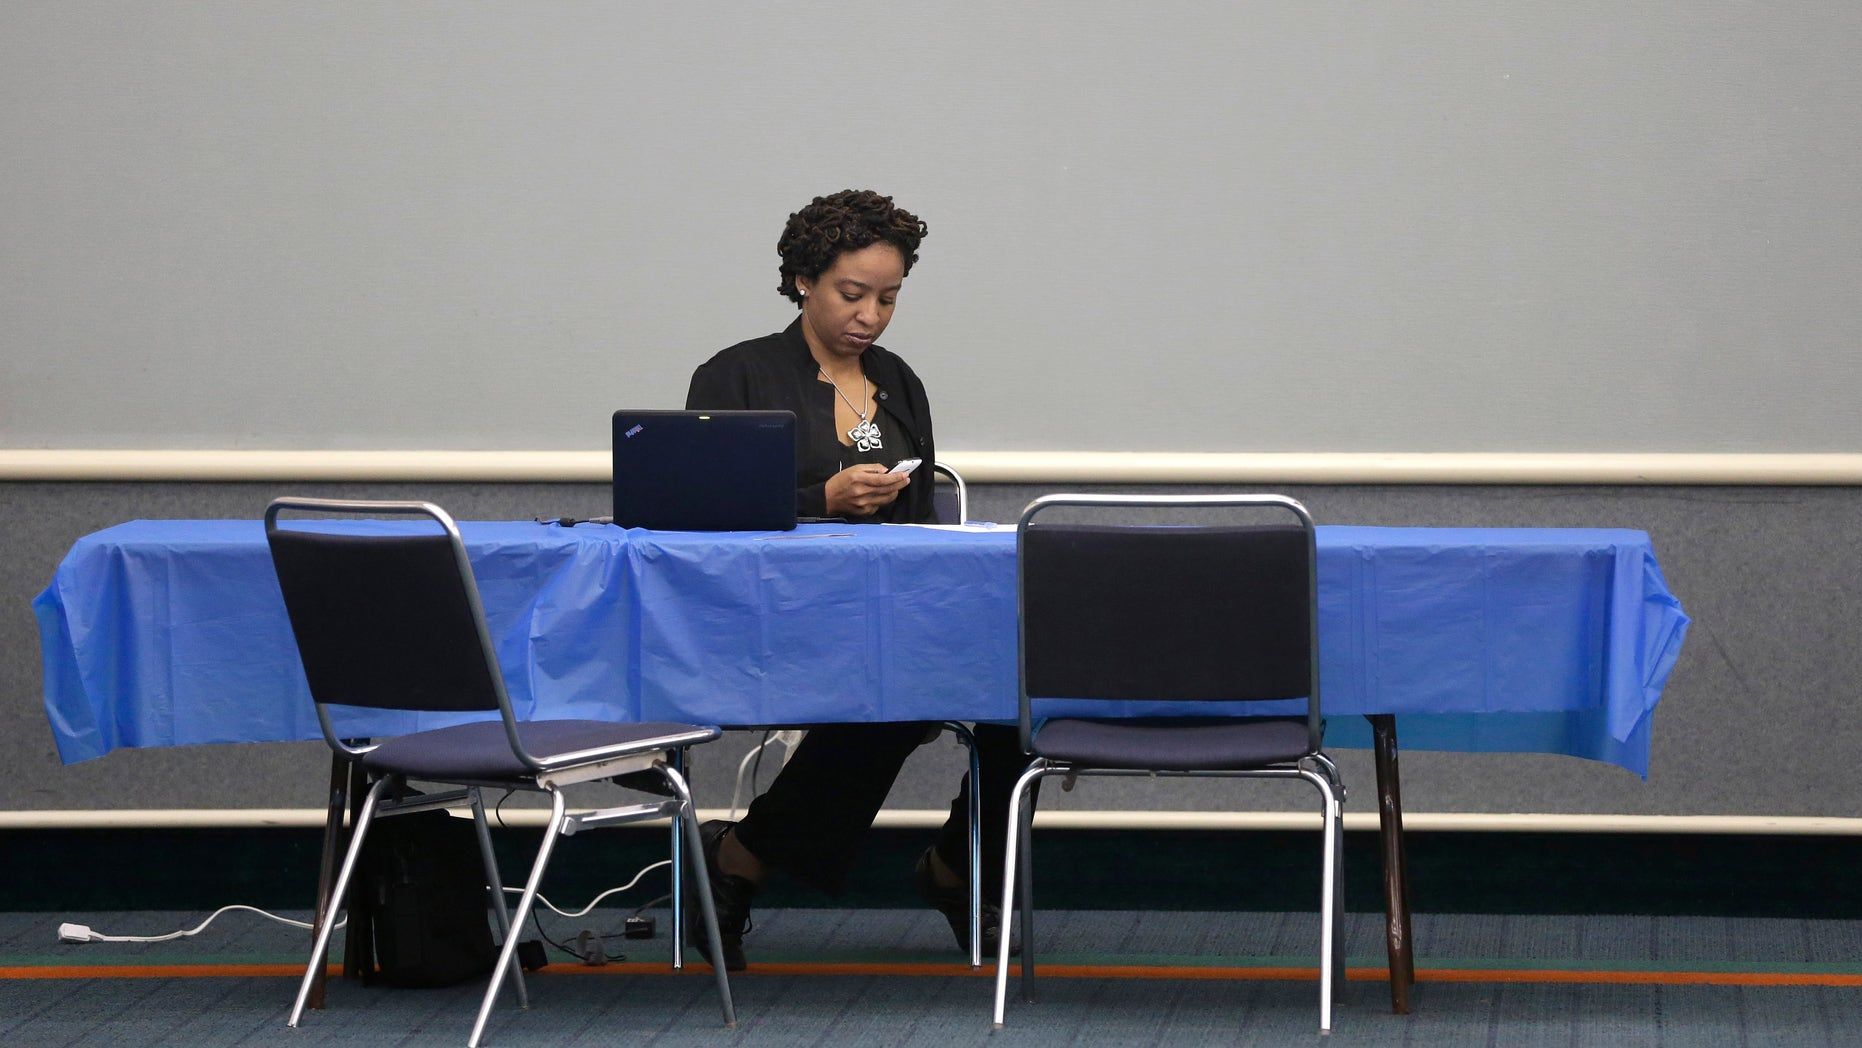 Health care assister Charolyn Mosley looks at her cell phone as she waits to help anyone looking to shop the  federal marketplace for health insurance at a convention center in Texas City, Texas, Saturday, March 1, 2014. Though organizers had recruited assisters to handle as many as 400 people in navigating the federal insurance marketplace, only a handful had come by in the first hours of operations.